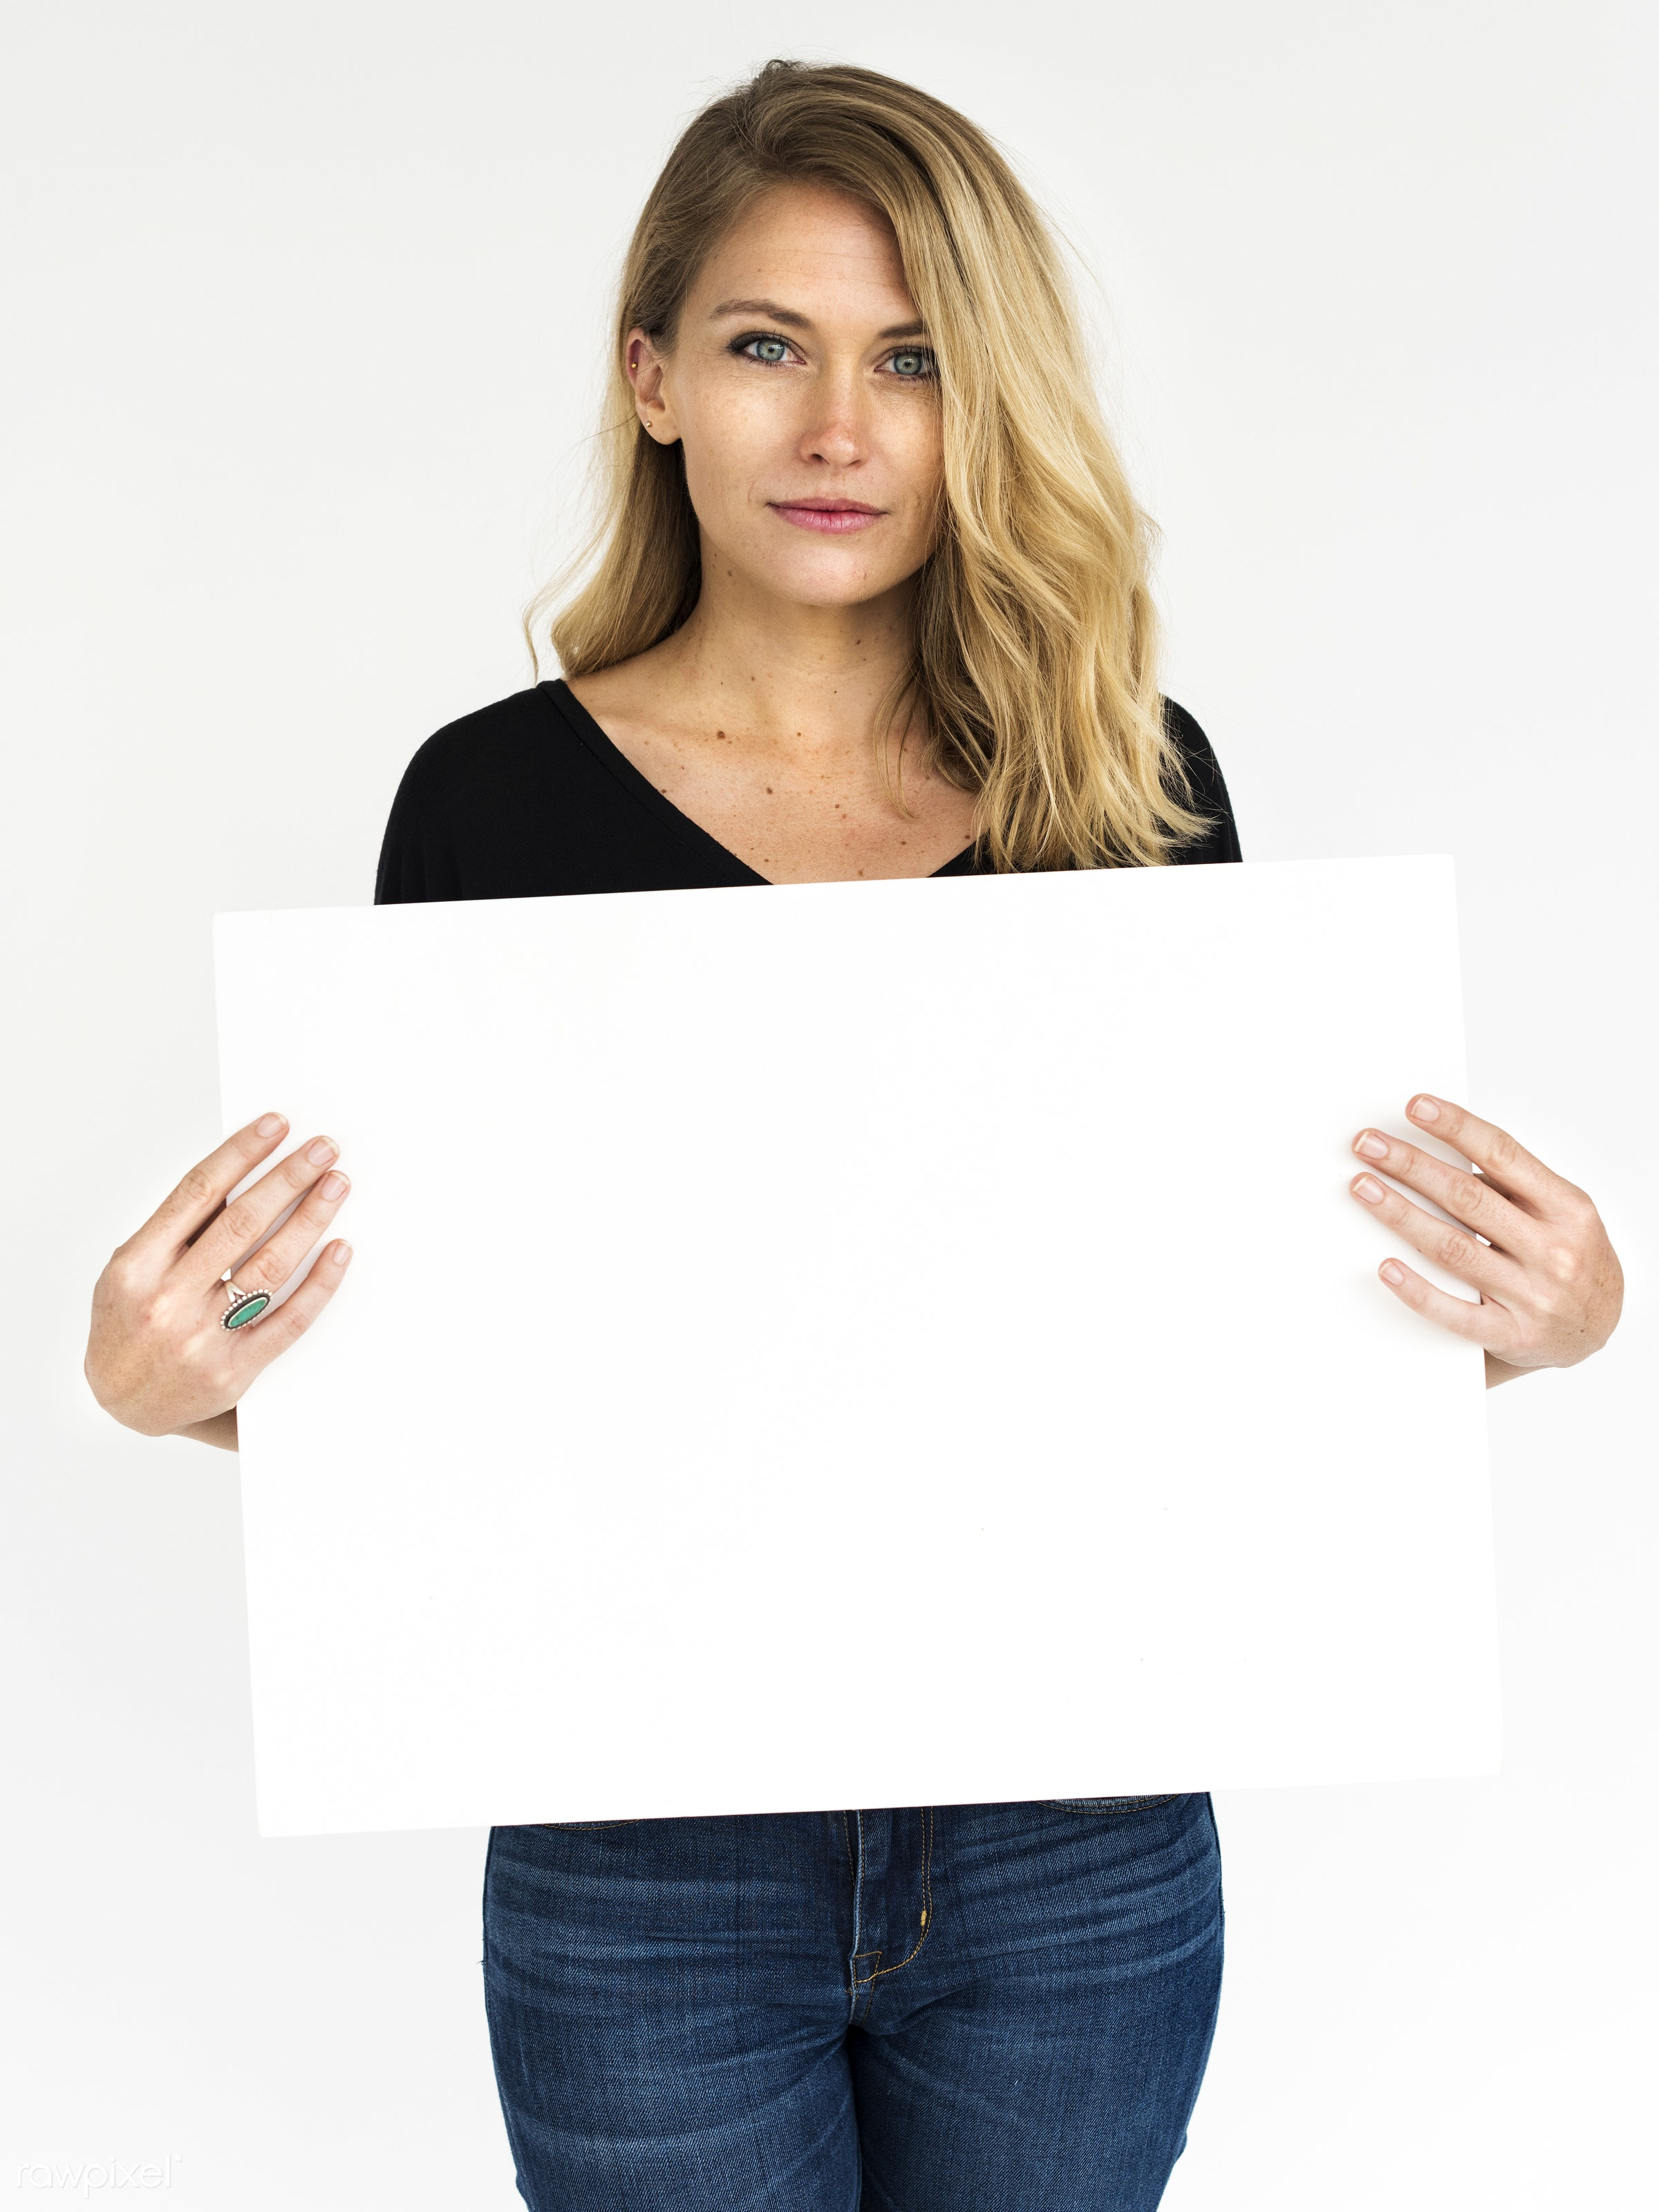 studio, person, holding, show, people, displaying, caucasian, placard, woman, empty, positive, smile, cheerful, smiling,...